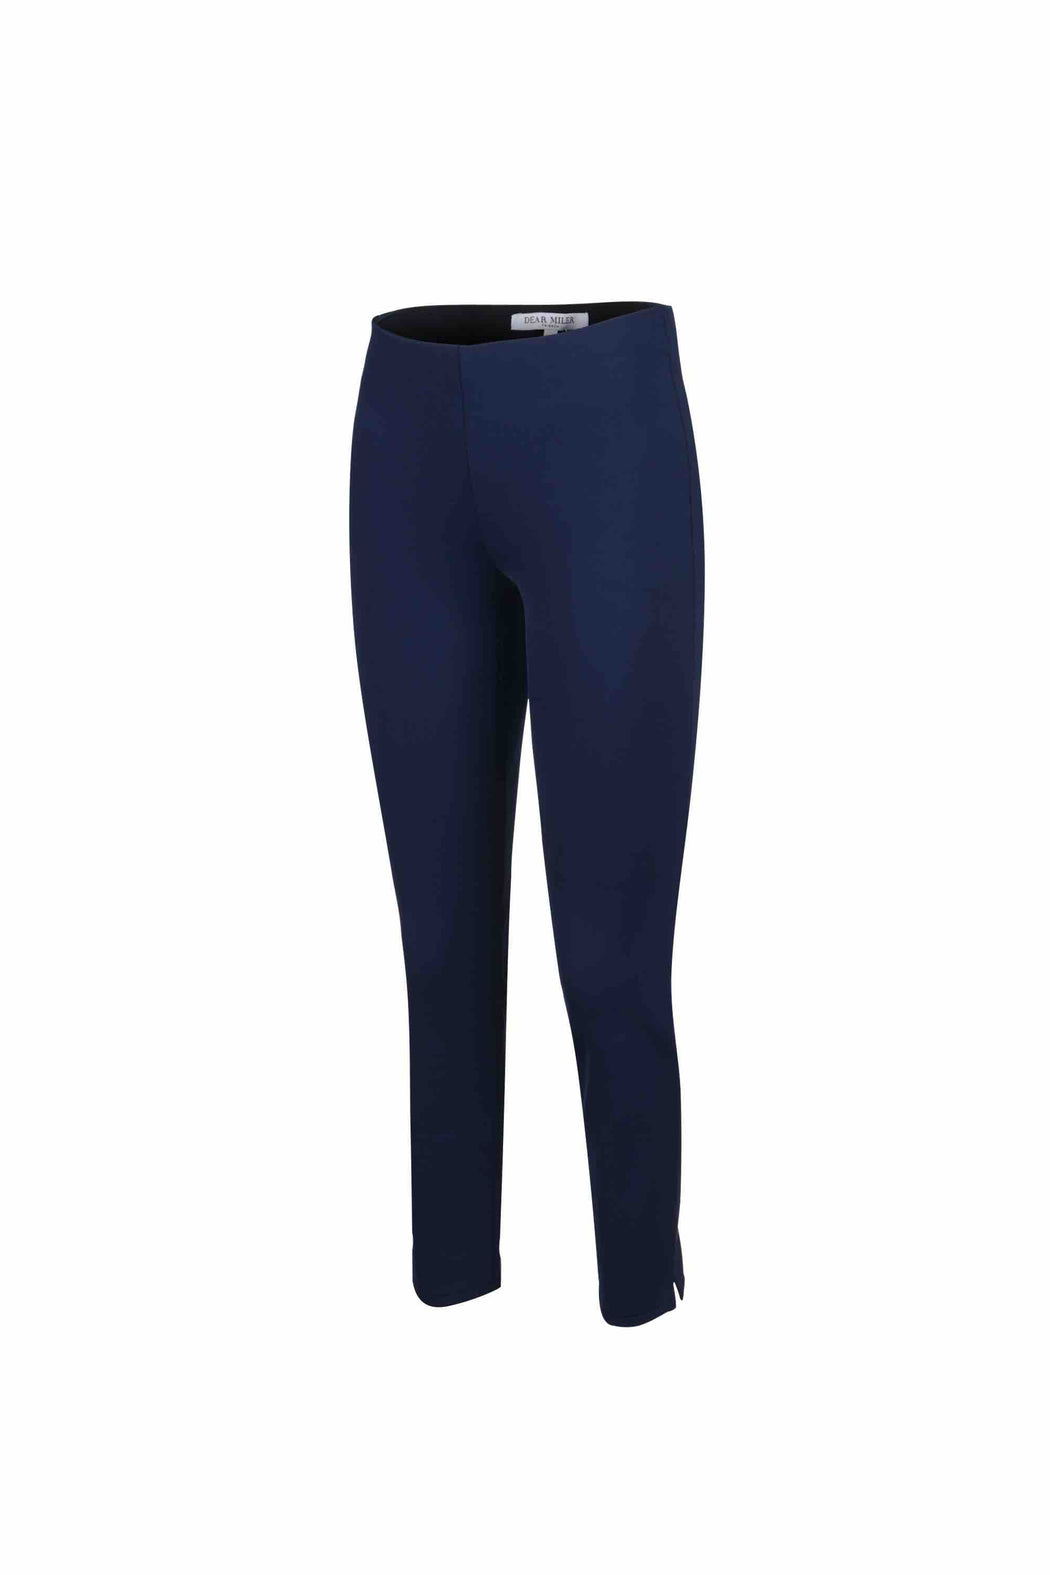 Side view of Women Super Stretchy Leggings in Navy